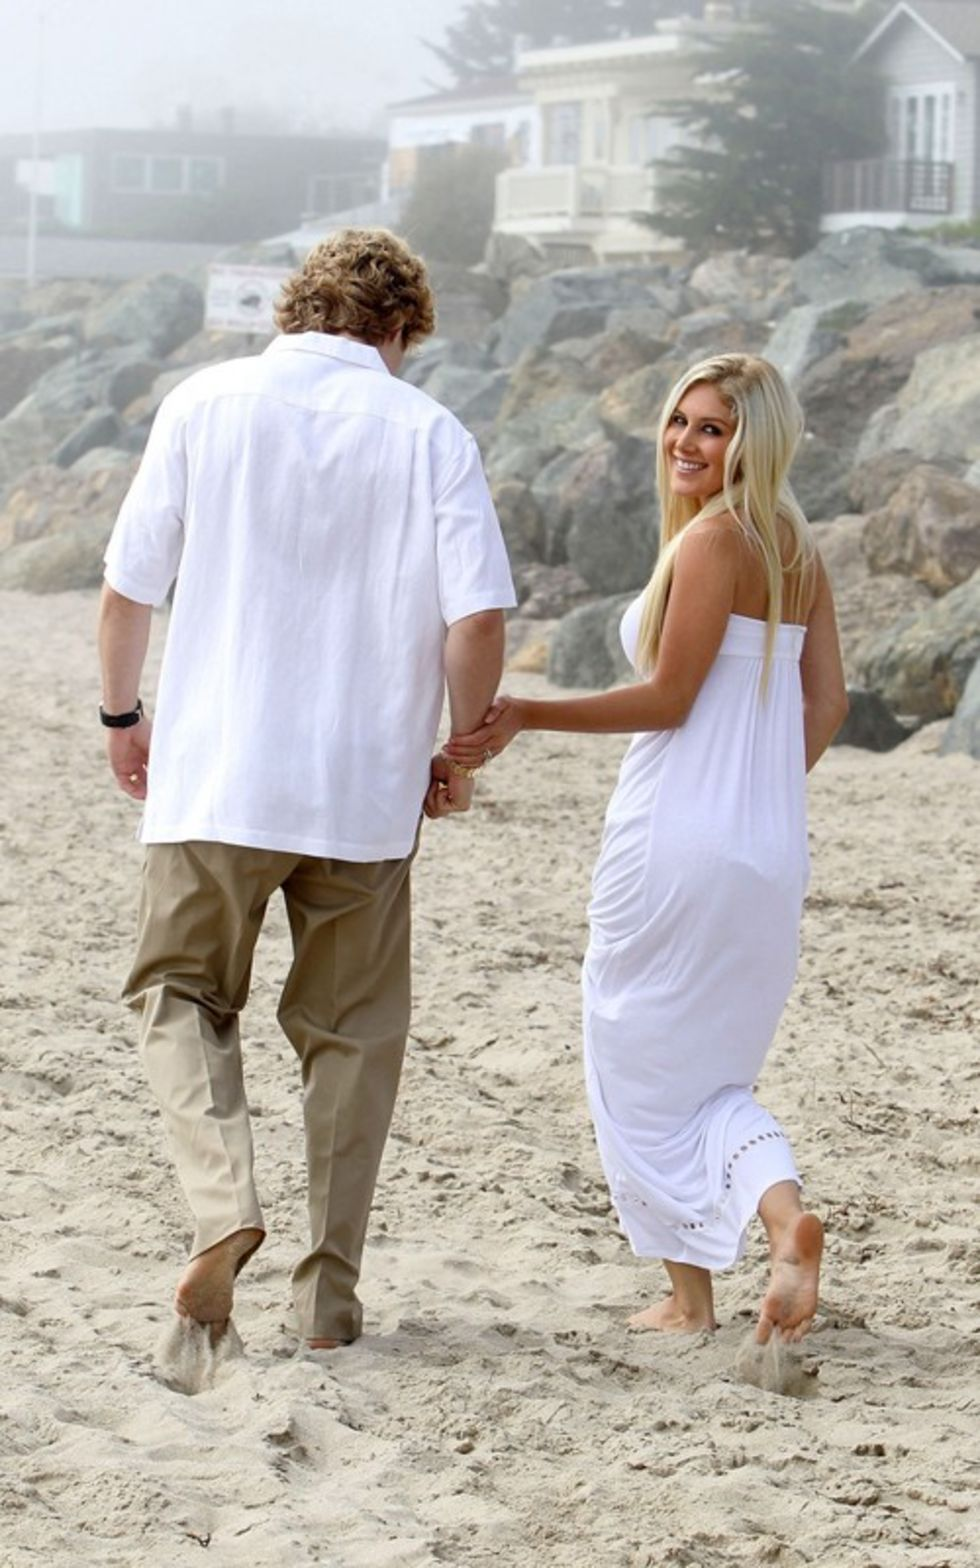 heidi-montag-with-pratt-in-malibu-beach-candids-sep-21-04